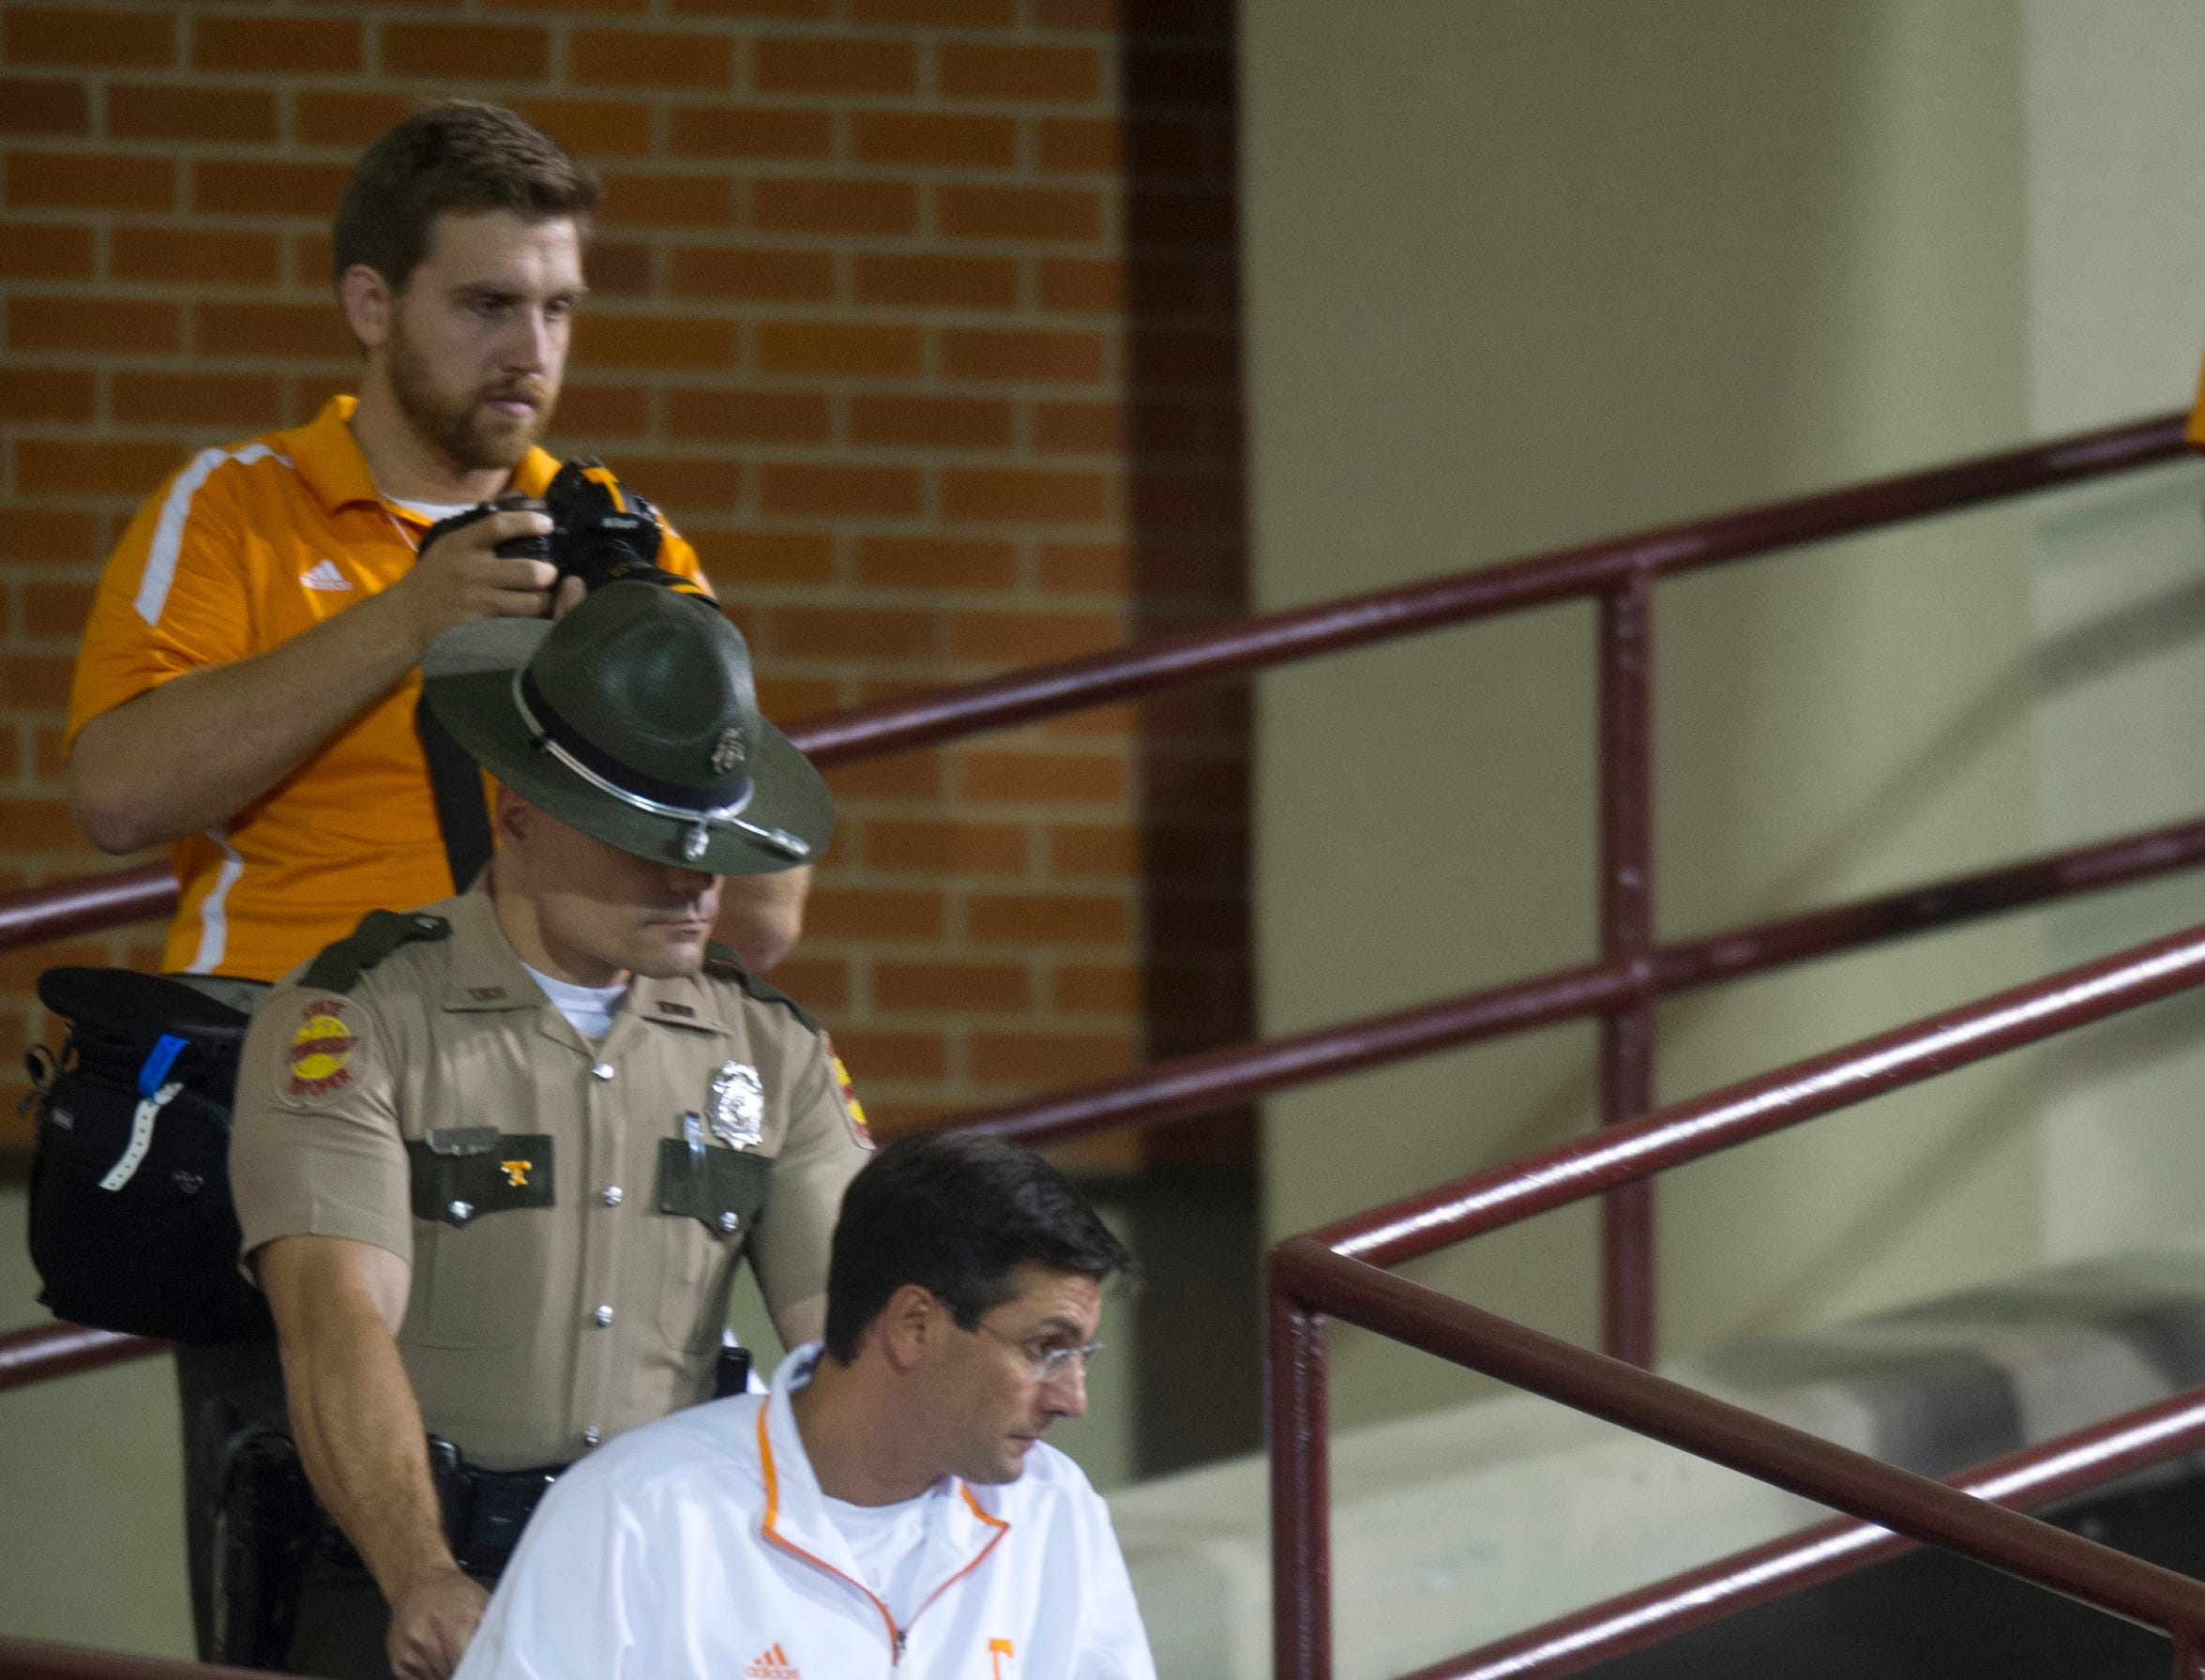 Tennessee head coach Derek Dooley is wheeled down a ramp from the locker room before the game against Mississippi State at Davis Wade Stadium in Starkville, Miss., Saturday, Oct. 13, 2012. Dooley underwent hip surgery earlier this week and is coaching the game from the press box.